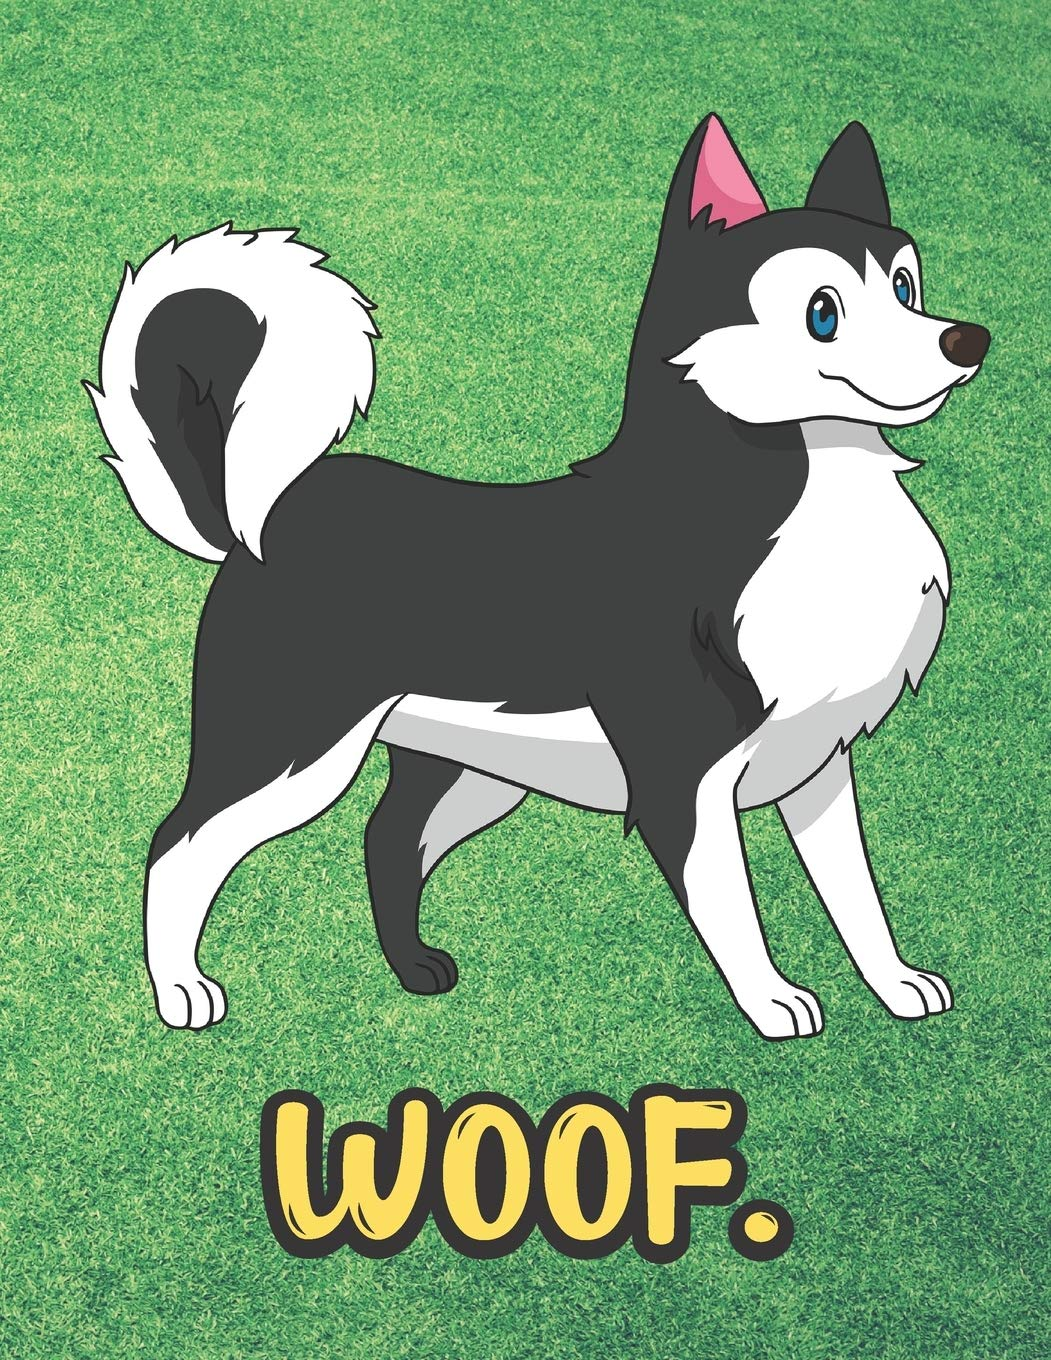 Woof Adorable Husky Malamute Pug Puppy Dog Notebook With Green Grass Background Design And Barking Noise Cover Perfect Journal For Pet And Dog Lovers Of All Ages Publishing Joanna H Peterson 9781701902084 Life with malamutes don't woof. amazon com